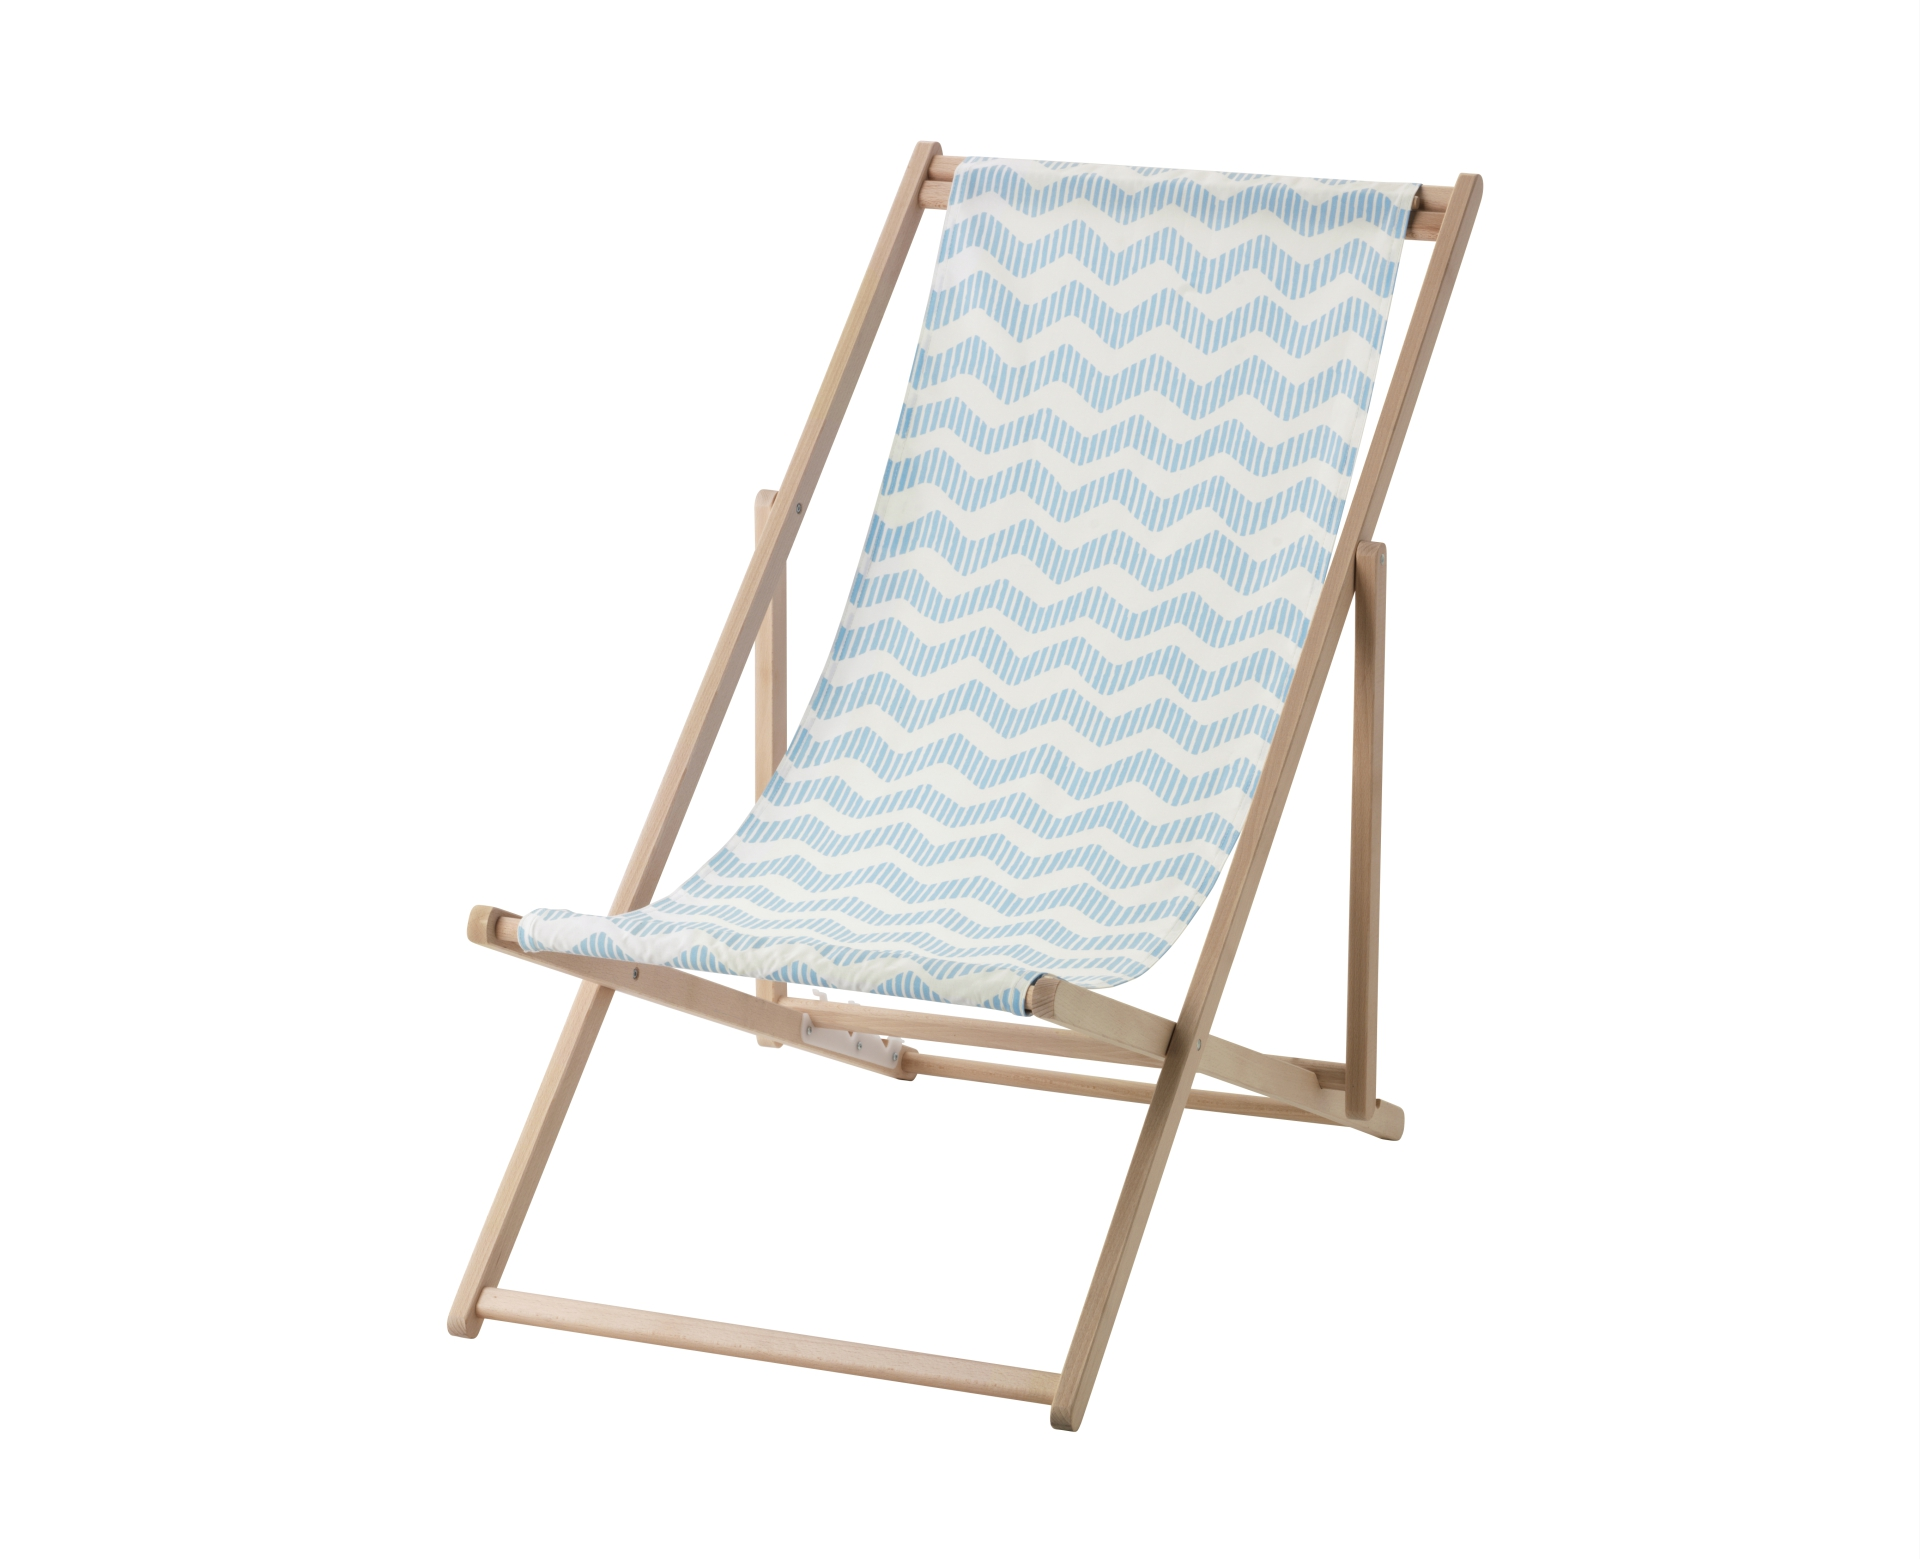 IKEA Recalls Beach Chairs Due to Fall and Fingertip Amputation